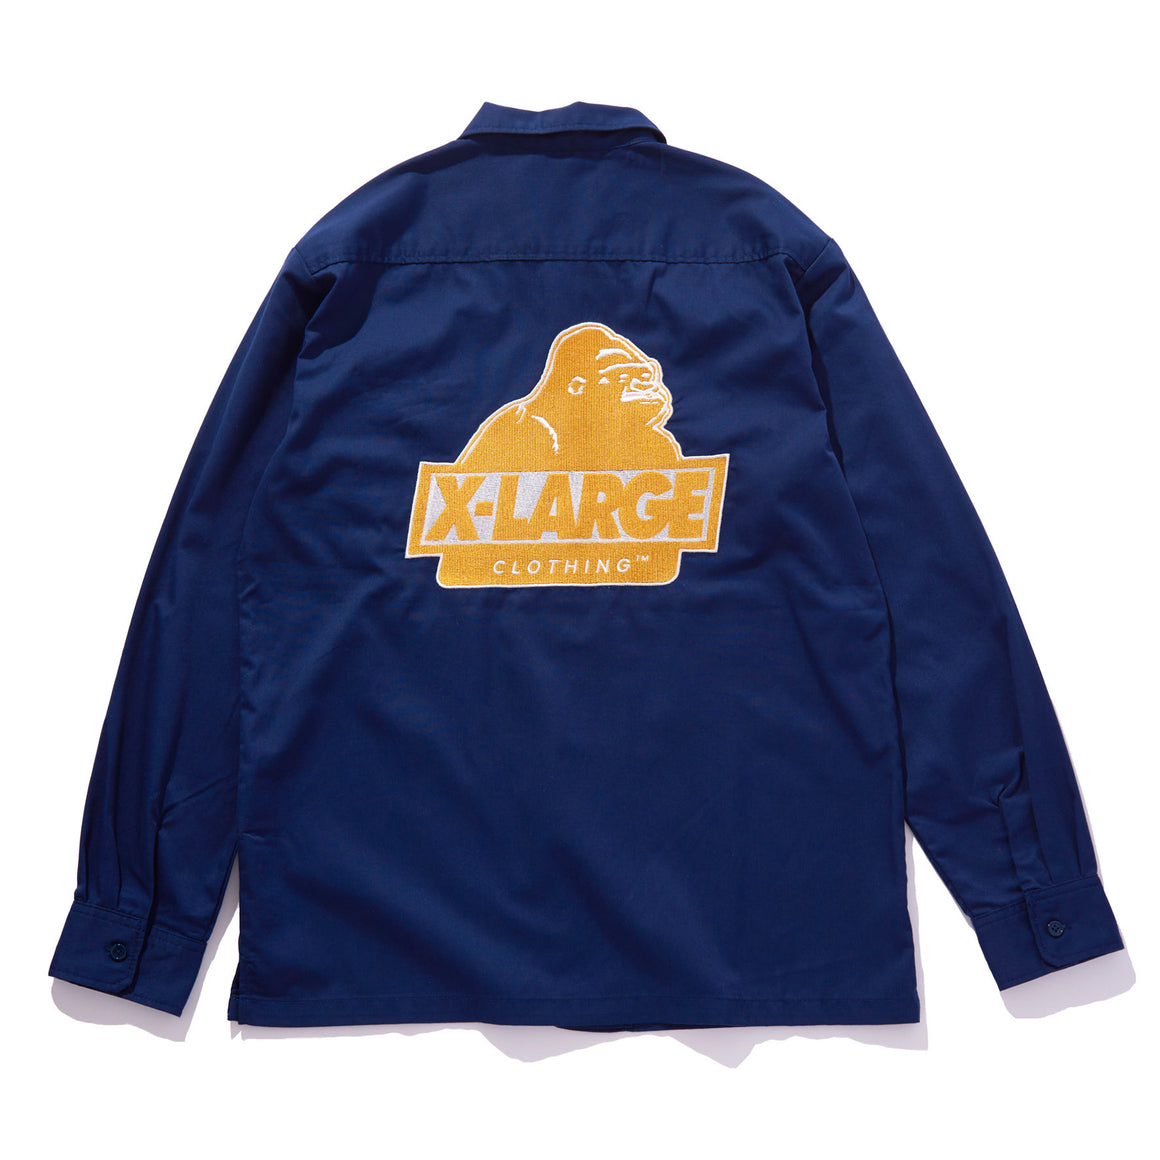 SLANTED OG LS WORK SHIRT - X-Large Clothing